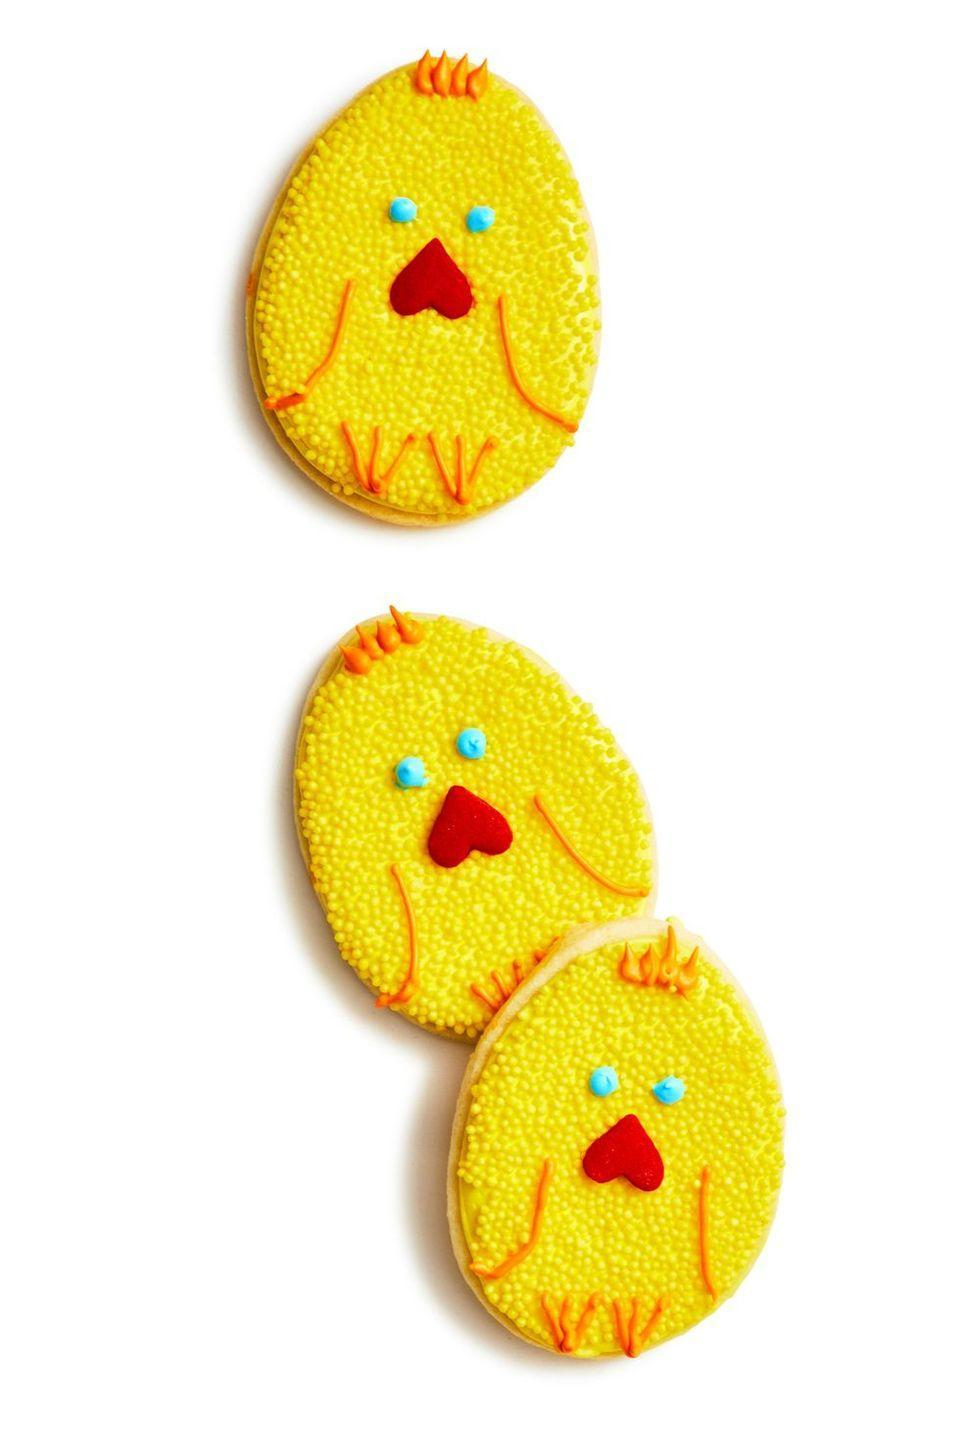 """<p>These adorable cookies are easy to make, and your little ones will love decorating each one with its own cute face and fun features. </p><p><strong><em><a href=""""https://www.womansday.com/food-recipes/food-drinks/a19156849/cookie-chicks-recipe/"""" rel=""""nofollow noopener"""" target=""""_blank"""" data-ylk=""""slk:Get the Cookie Chicks recipe."""" class=""""link rapid-noclick-resp"""">Get the Cookie Chicks recipe. </a></em></strong></p>"""